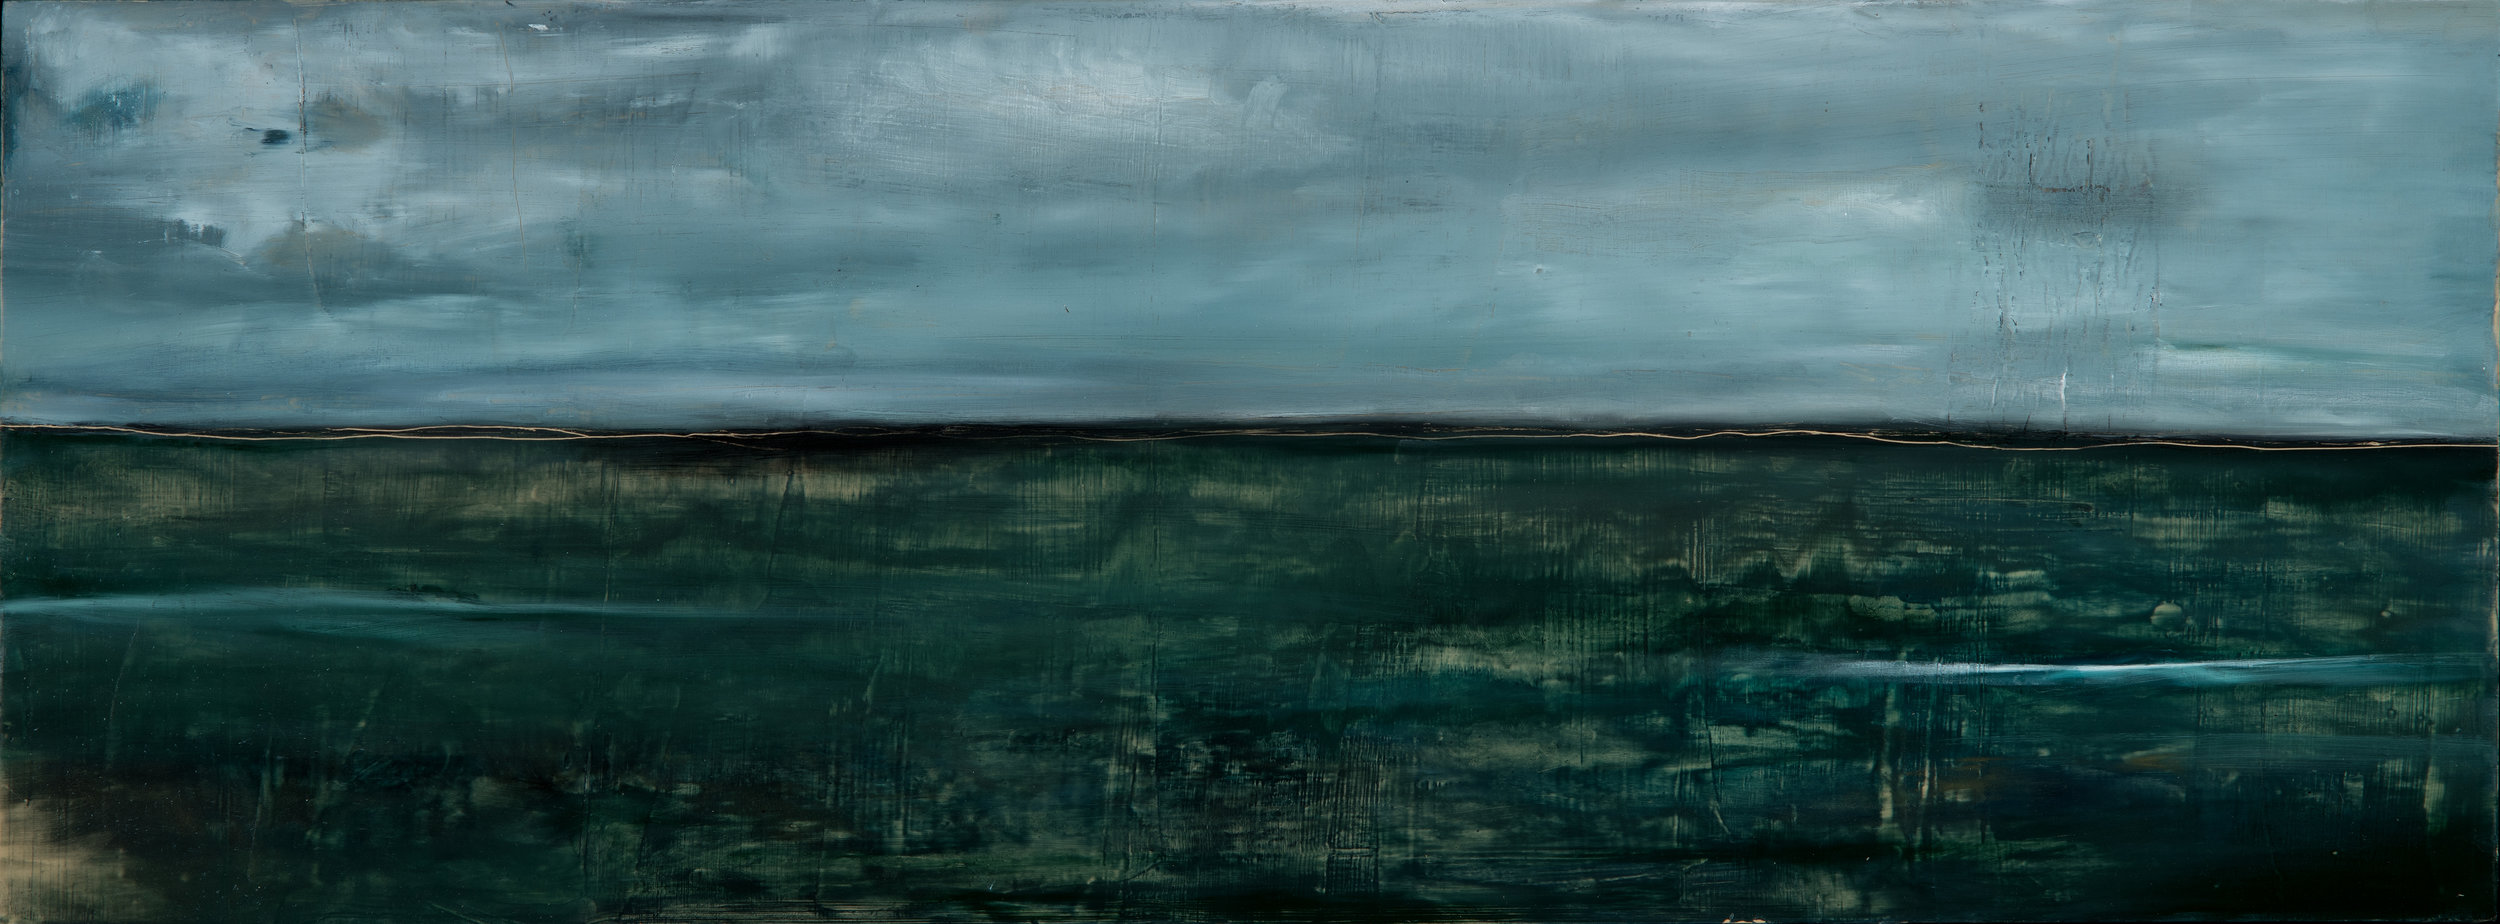 Gerard Drive, 2018, oil stick and encaustic on board, 14 x 35 in, $2,400